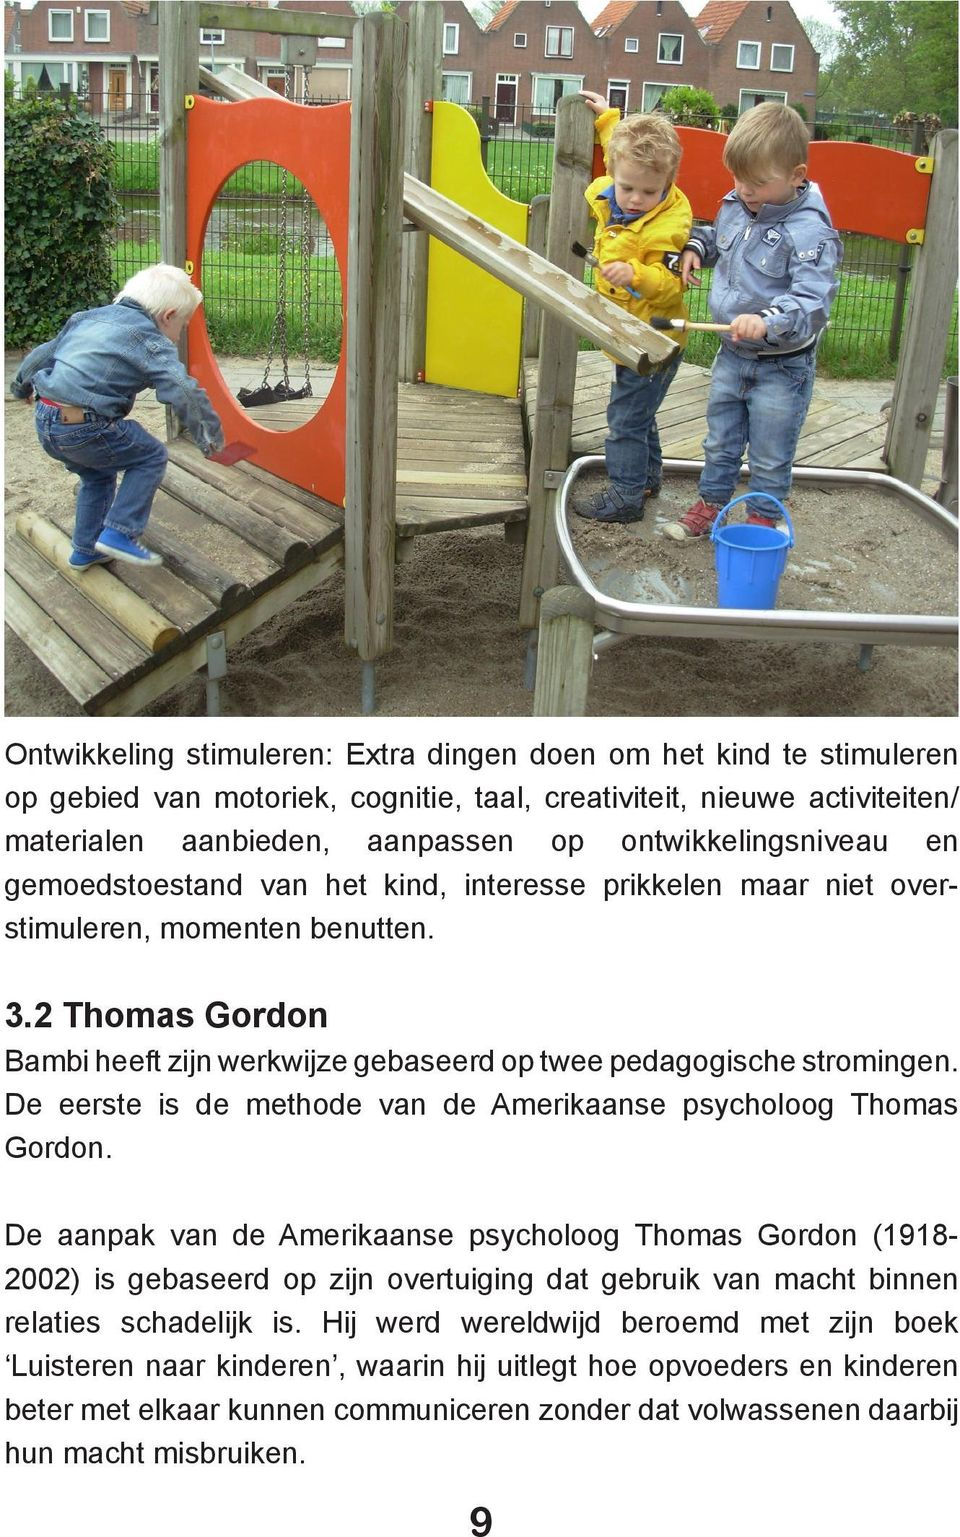 De eerste is de methode van de Amerikaanse psycholoog Thomas Gordon.